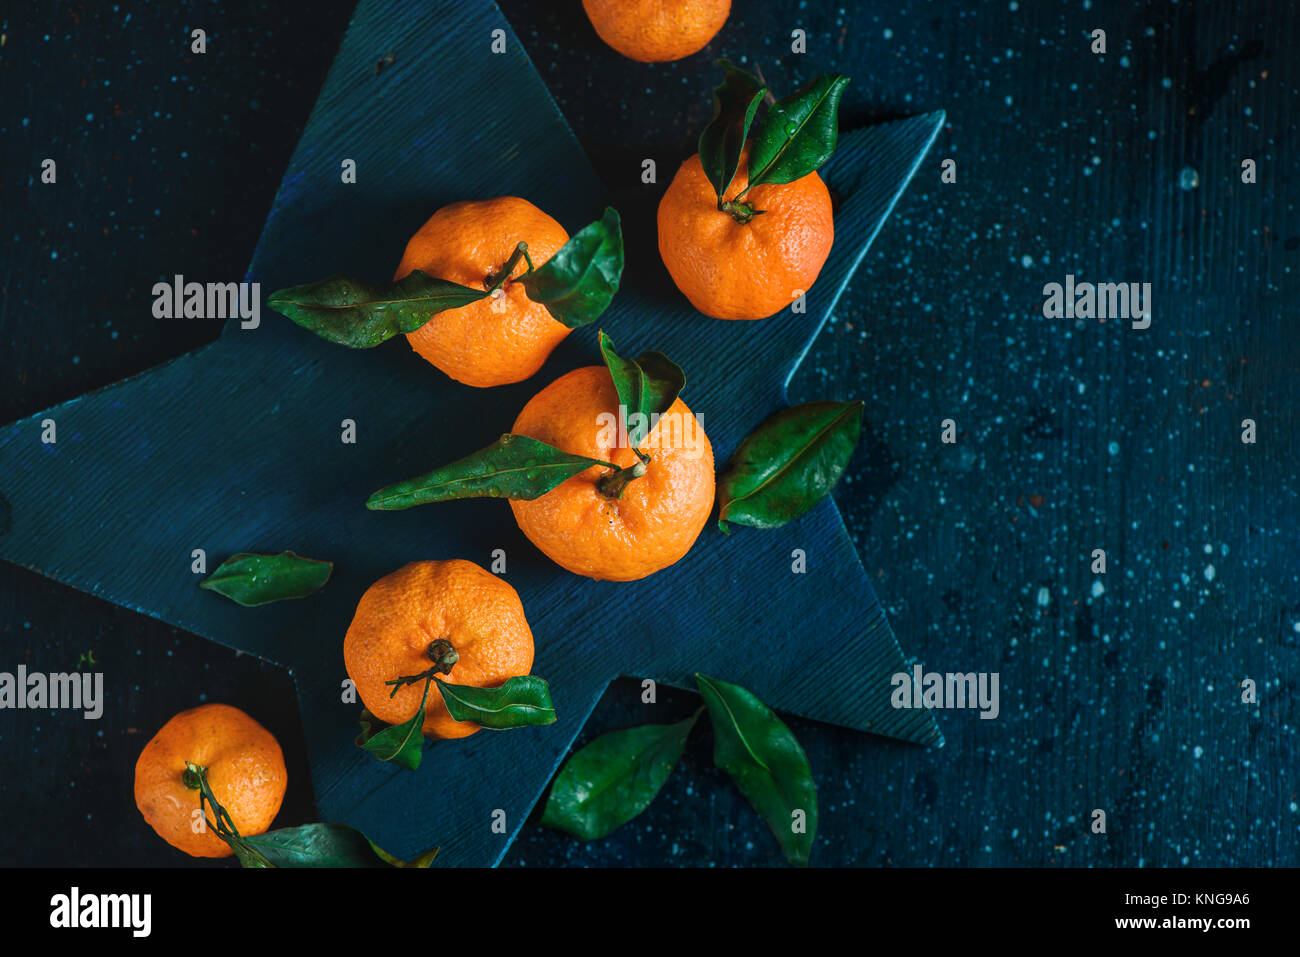 Orange tangerines with green leaves on a star-shaped cutting board. Vibrant fruits on a dark background. Rustic - Stock Image